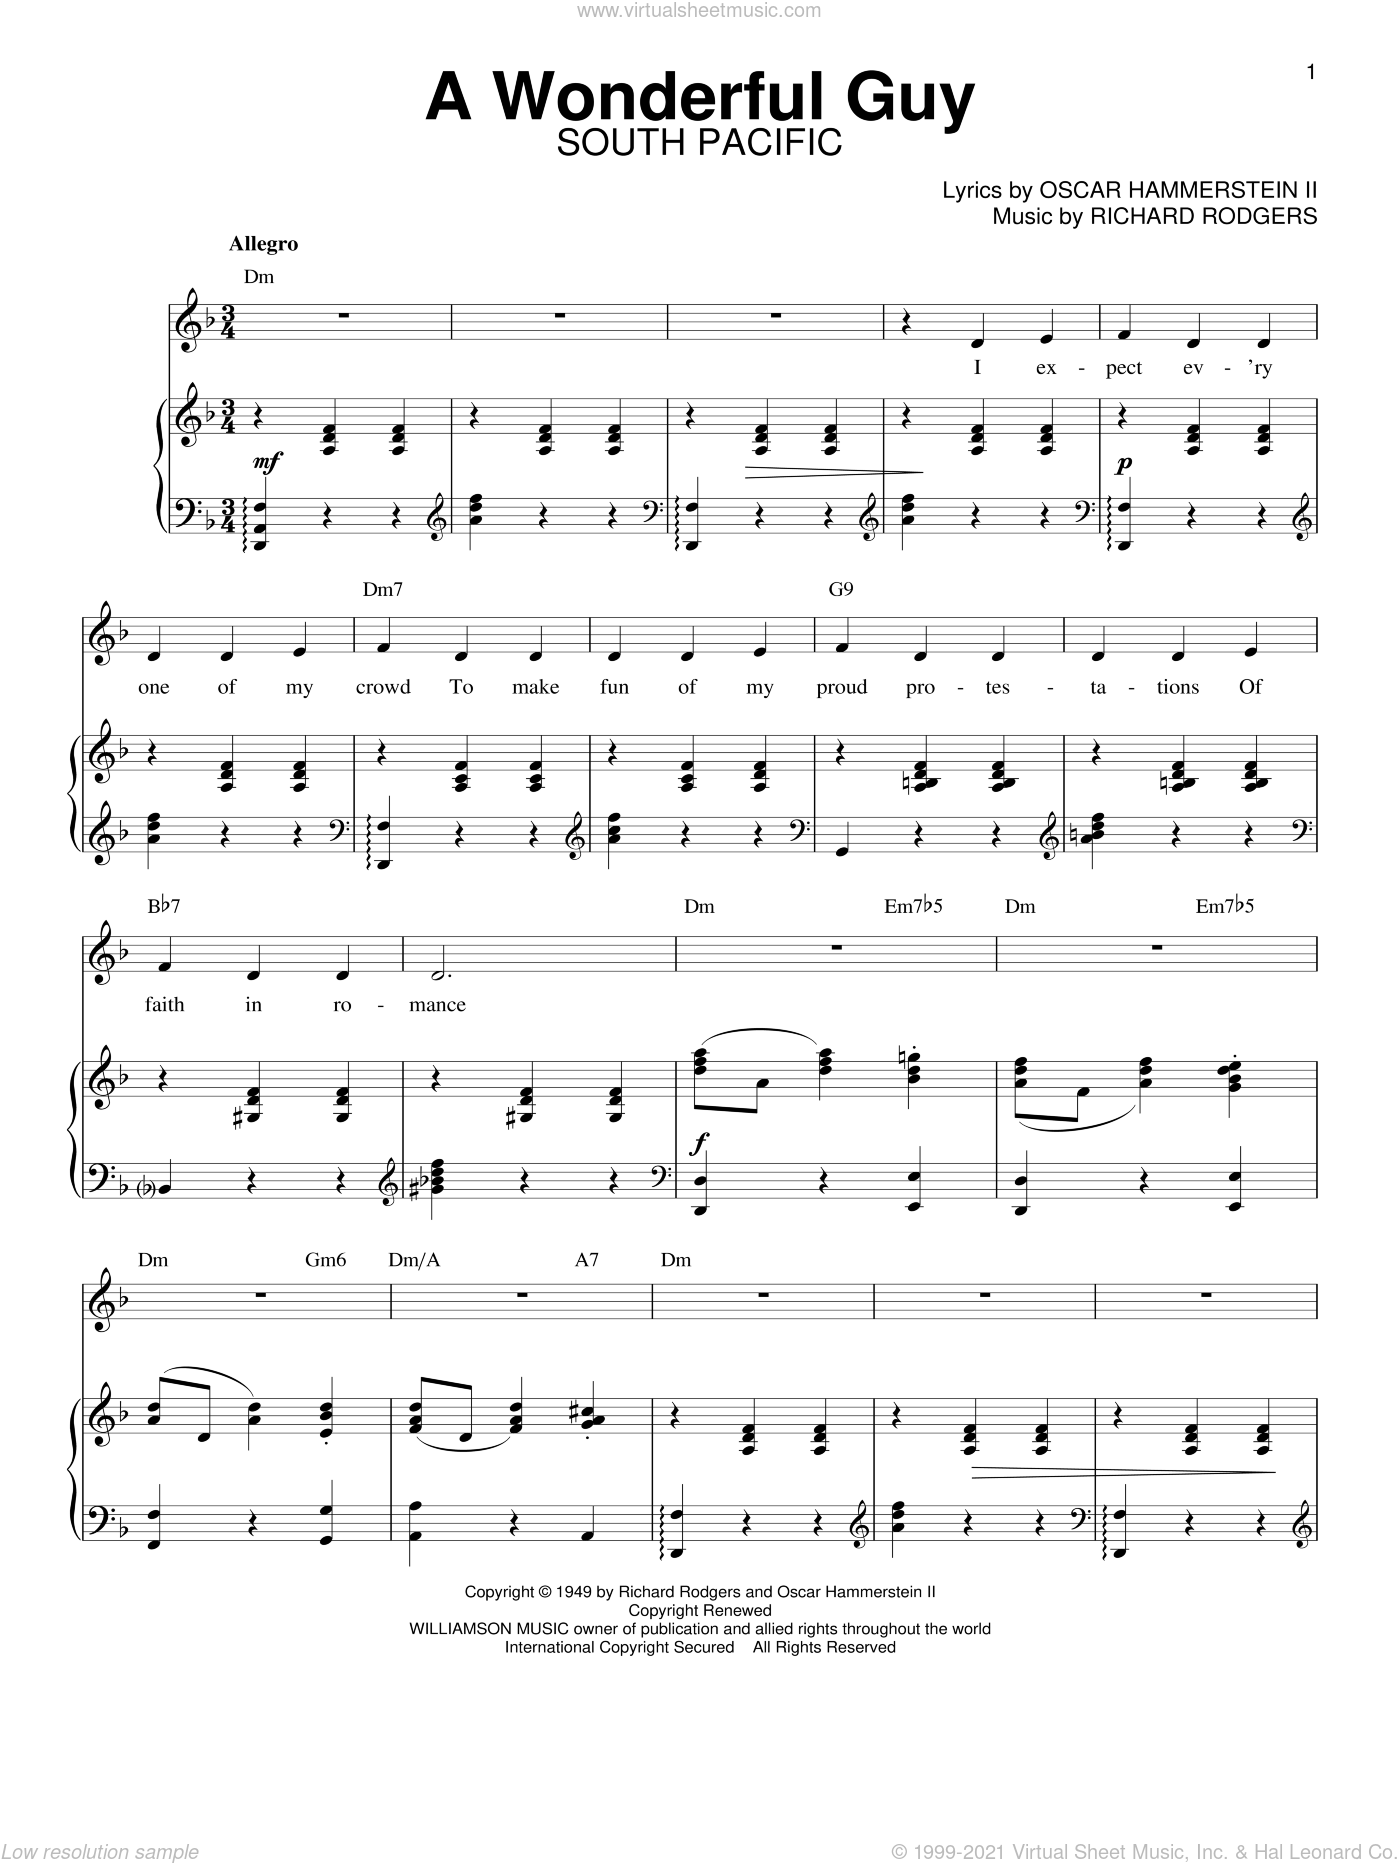 A Wonderful Guy sheet music for voice and piano by Richard Rodgers